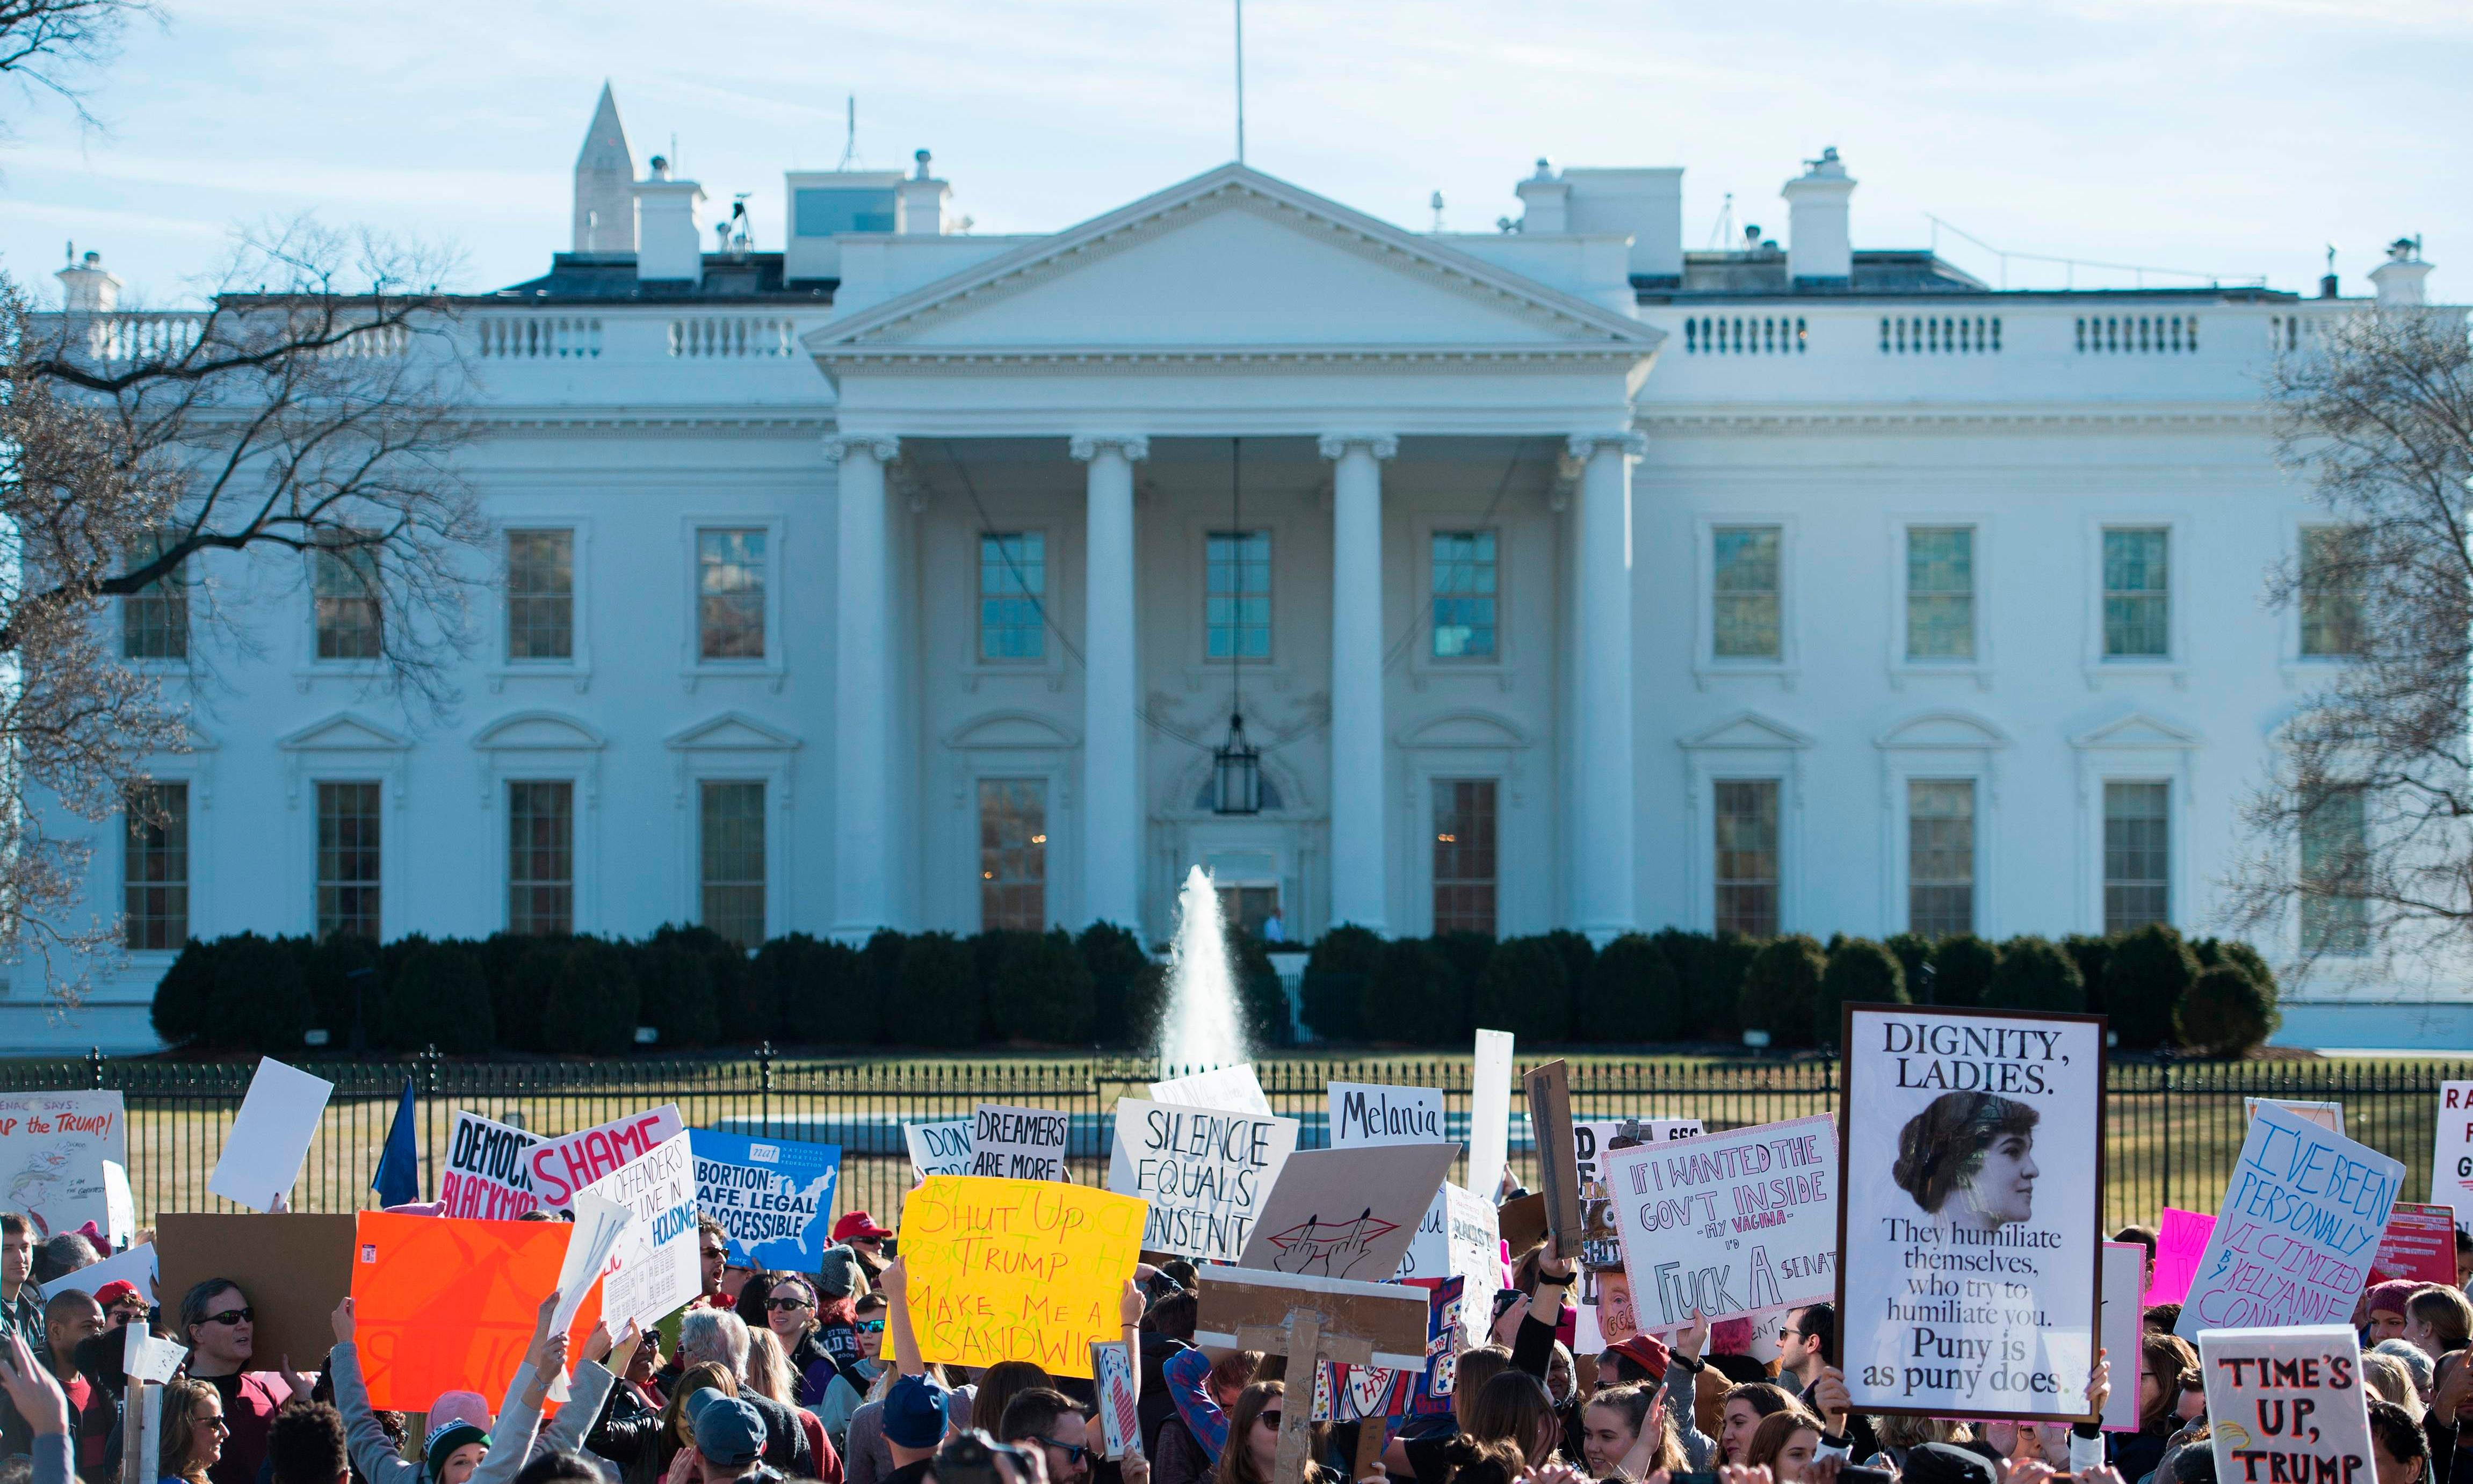 Trump administration plans crackdown on protests outside White House